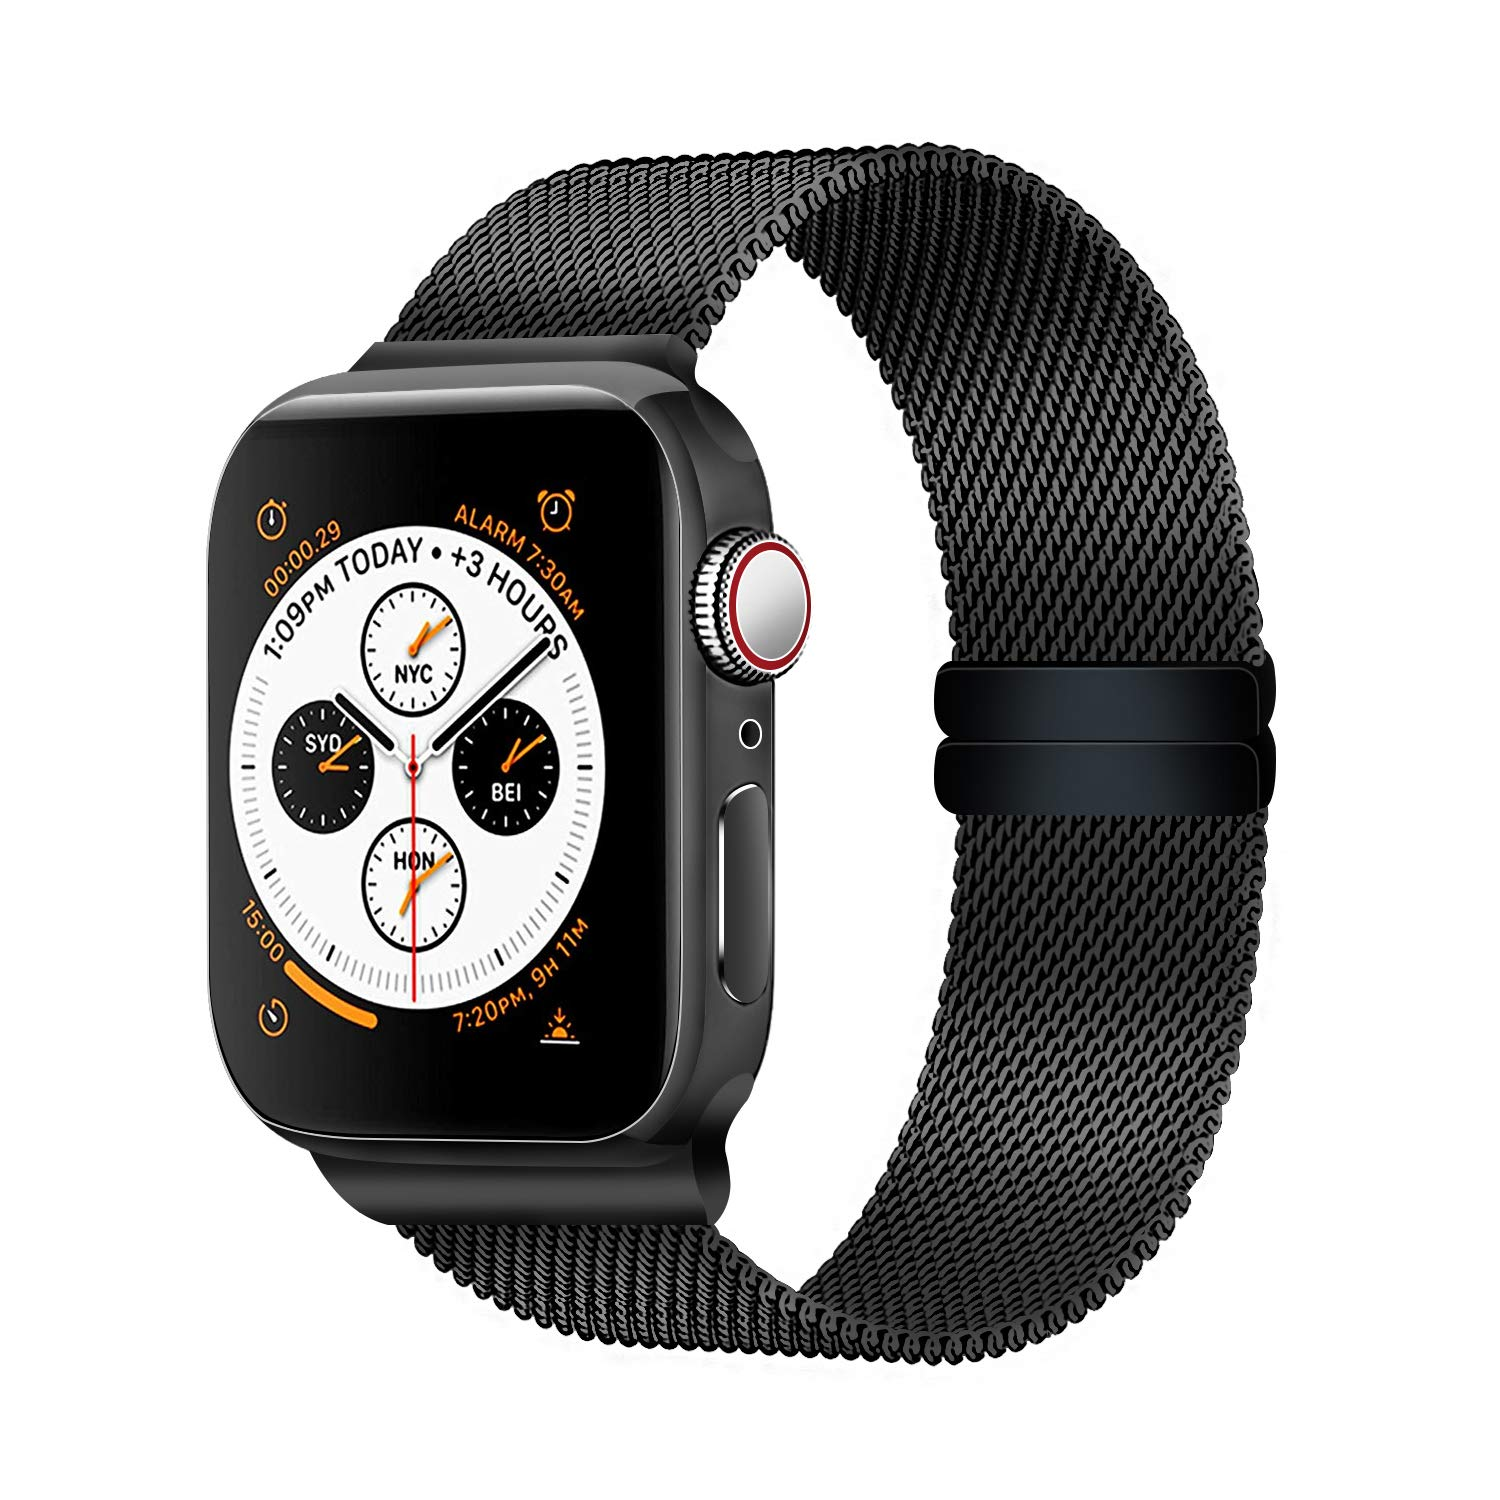 LUNANI Compatible for Apple Watch Band 38mm 40mm 42mm 44mm, Mesh Sport Wristband Loop with Adjustable Magnet Clasp for iWatch Series 1 2 3 4 (Black, 38mm/40mm) by LUNANI